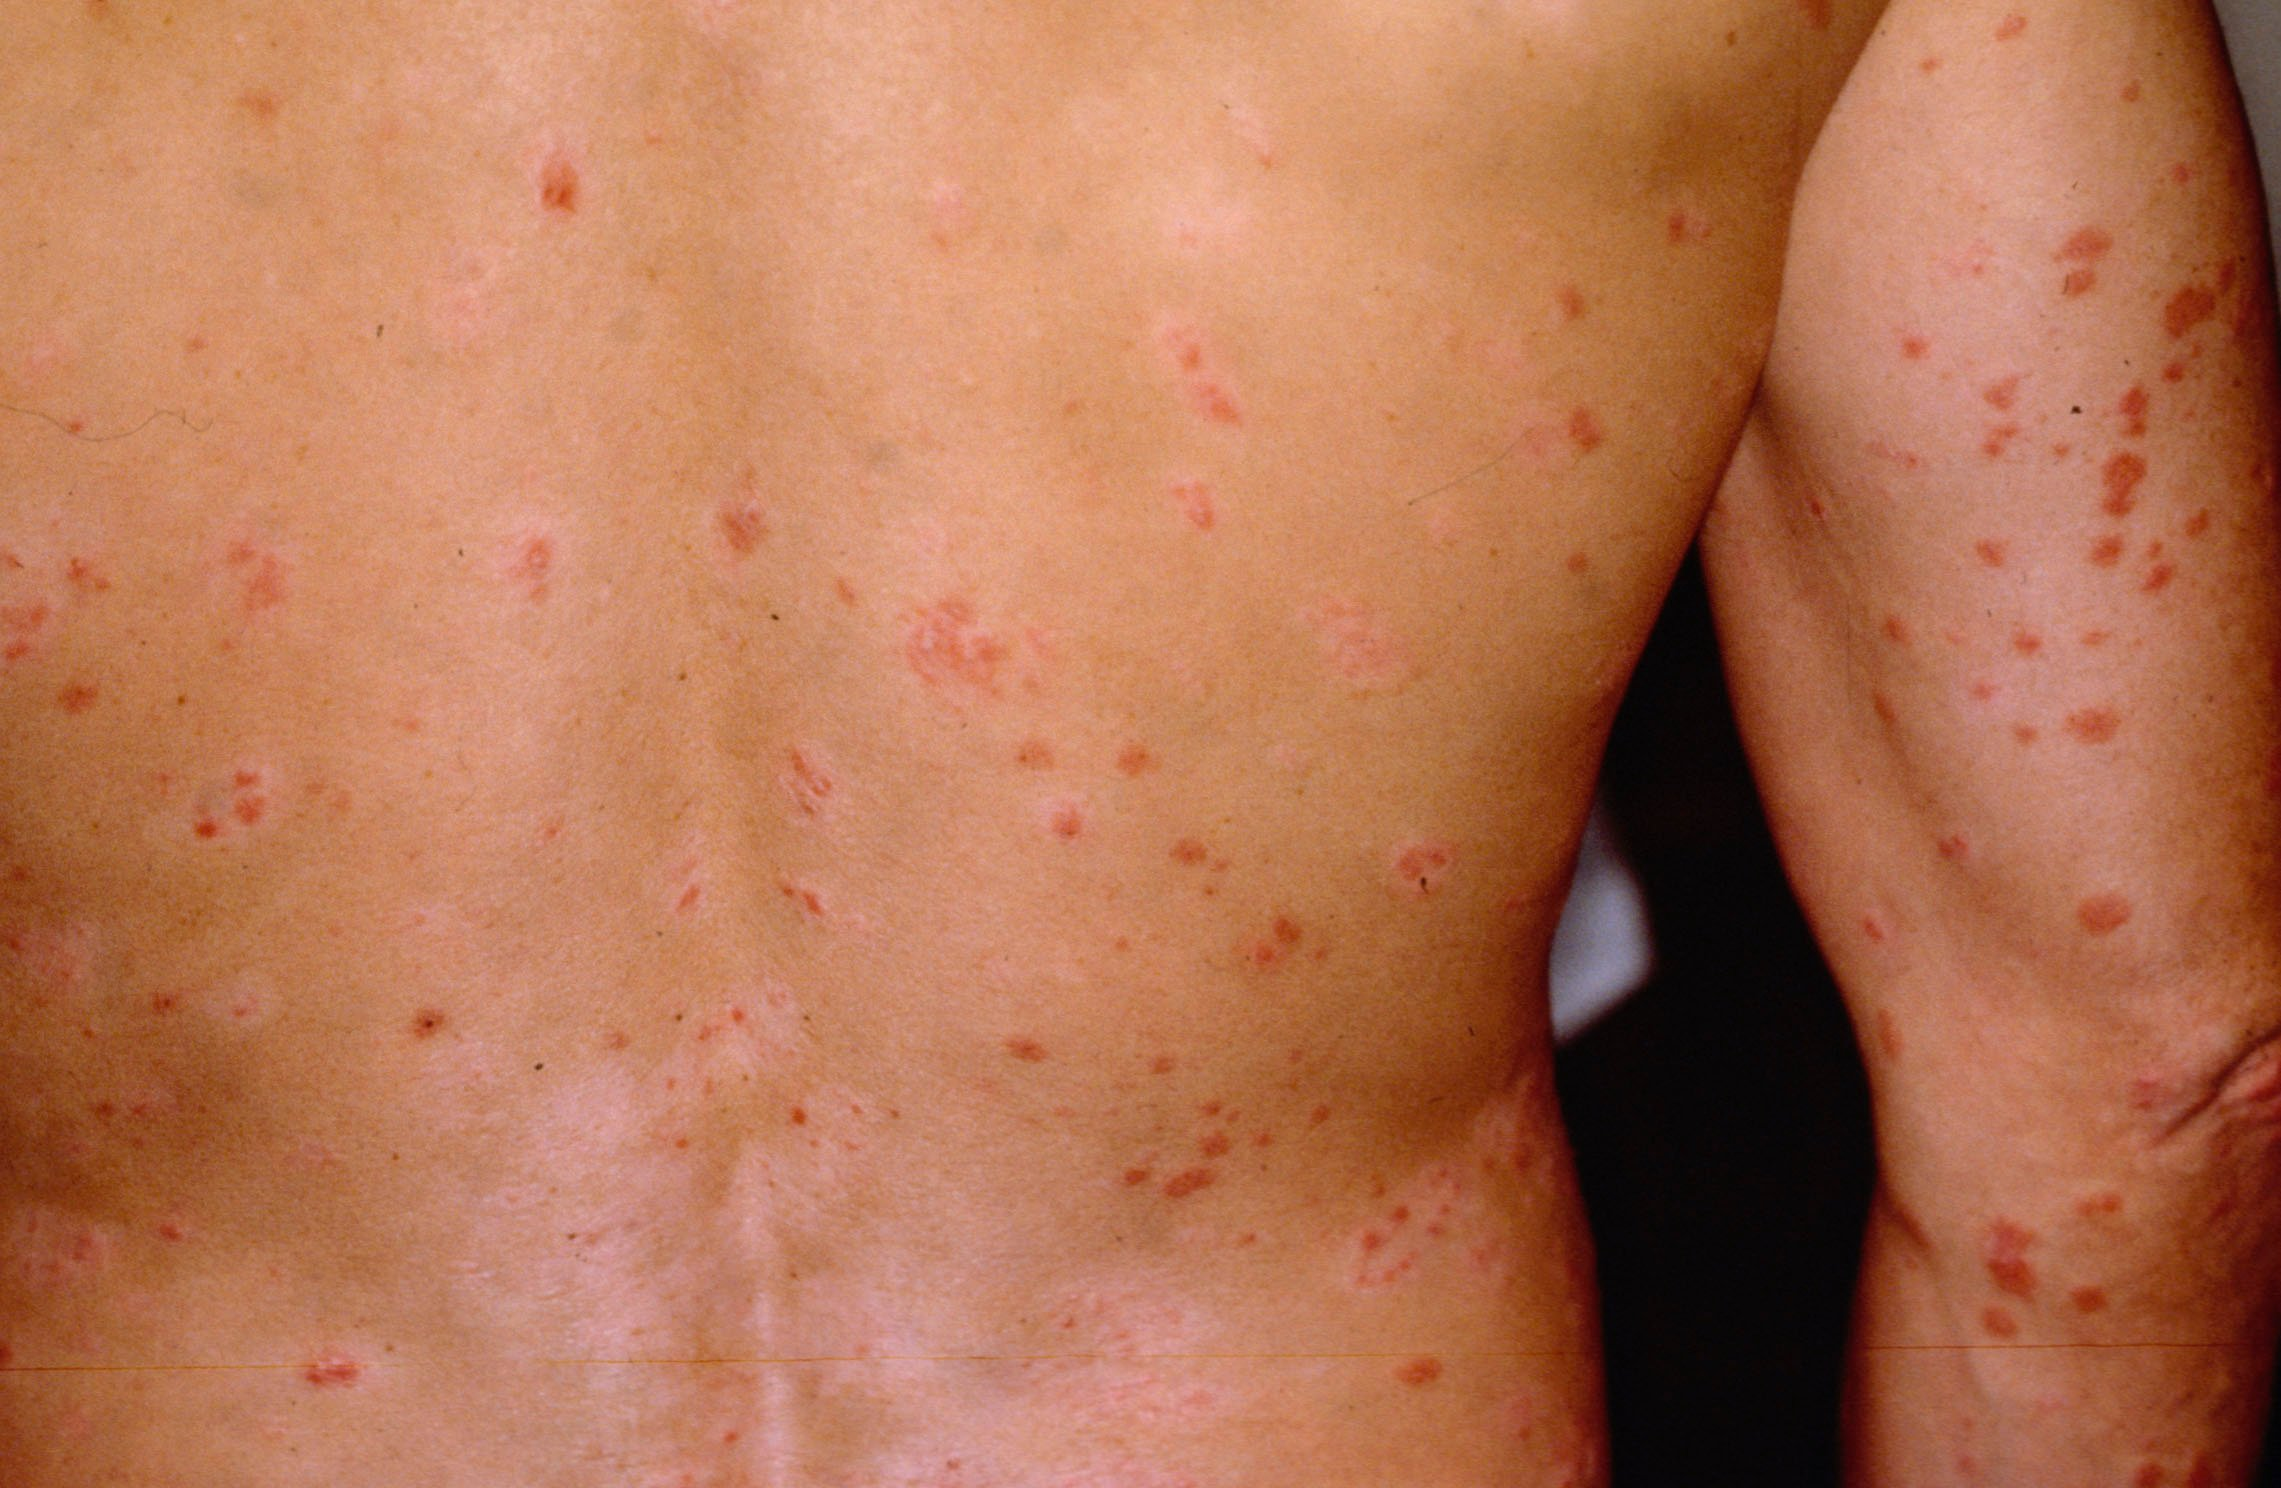 What Causes Red Spots On Skin